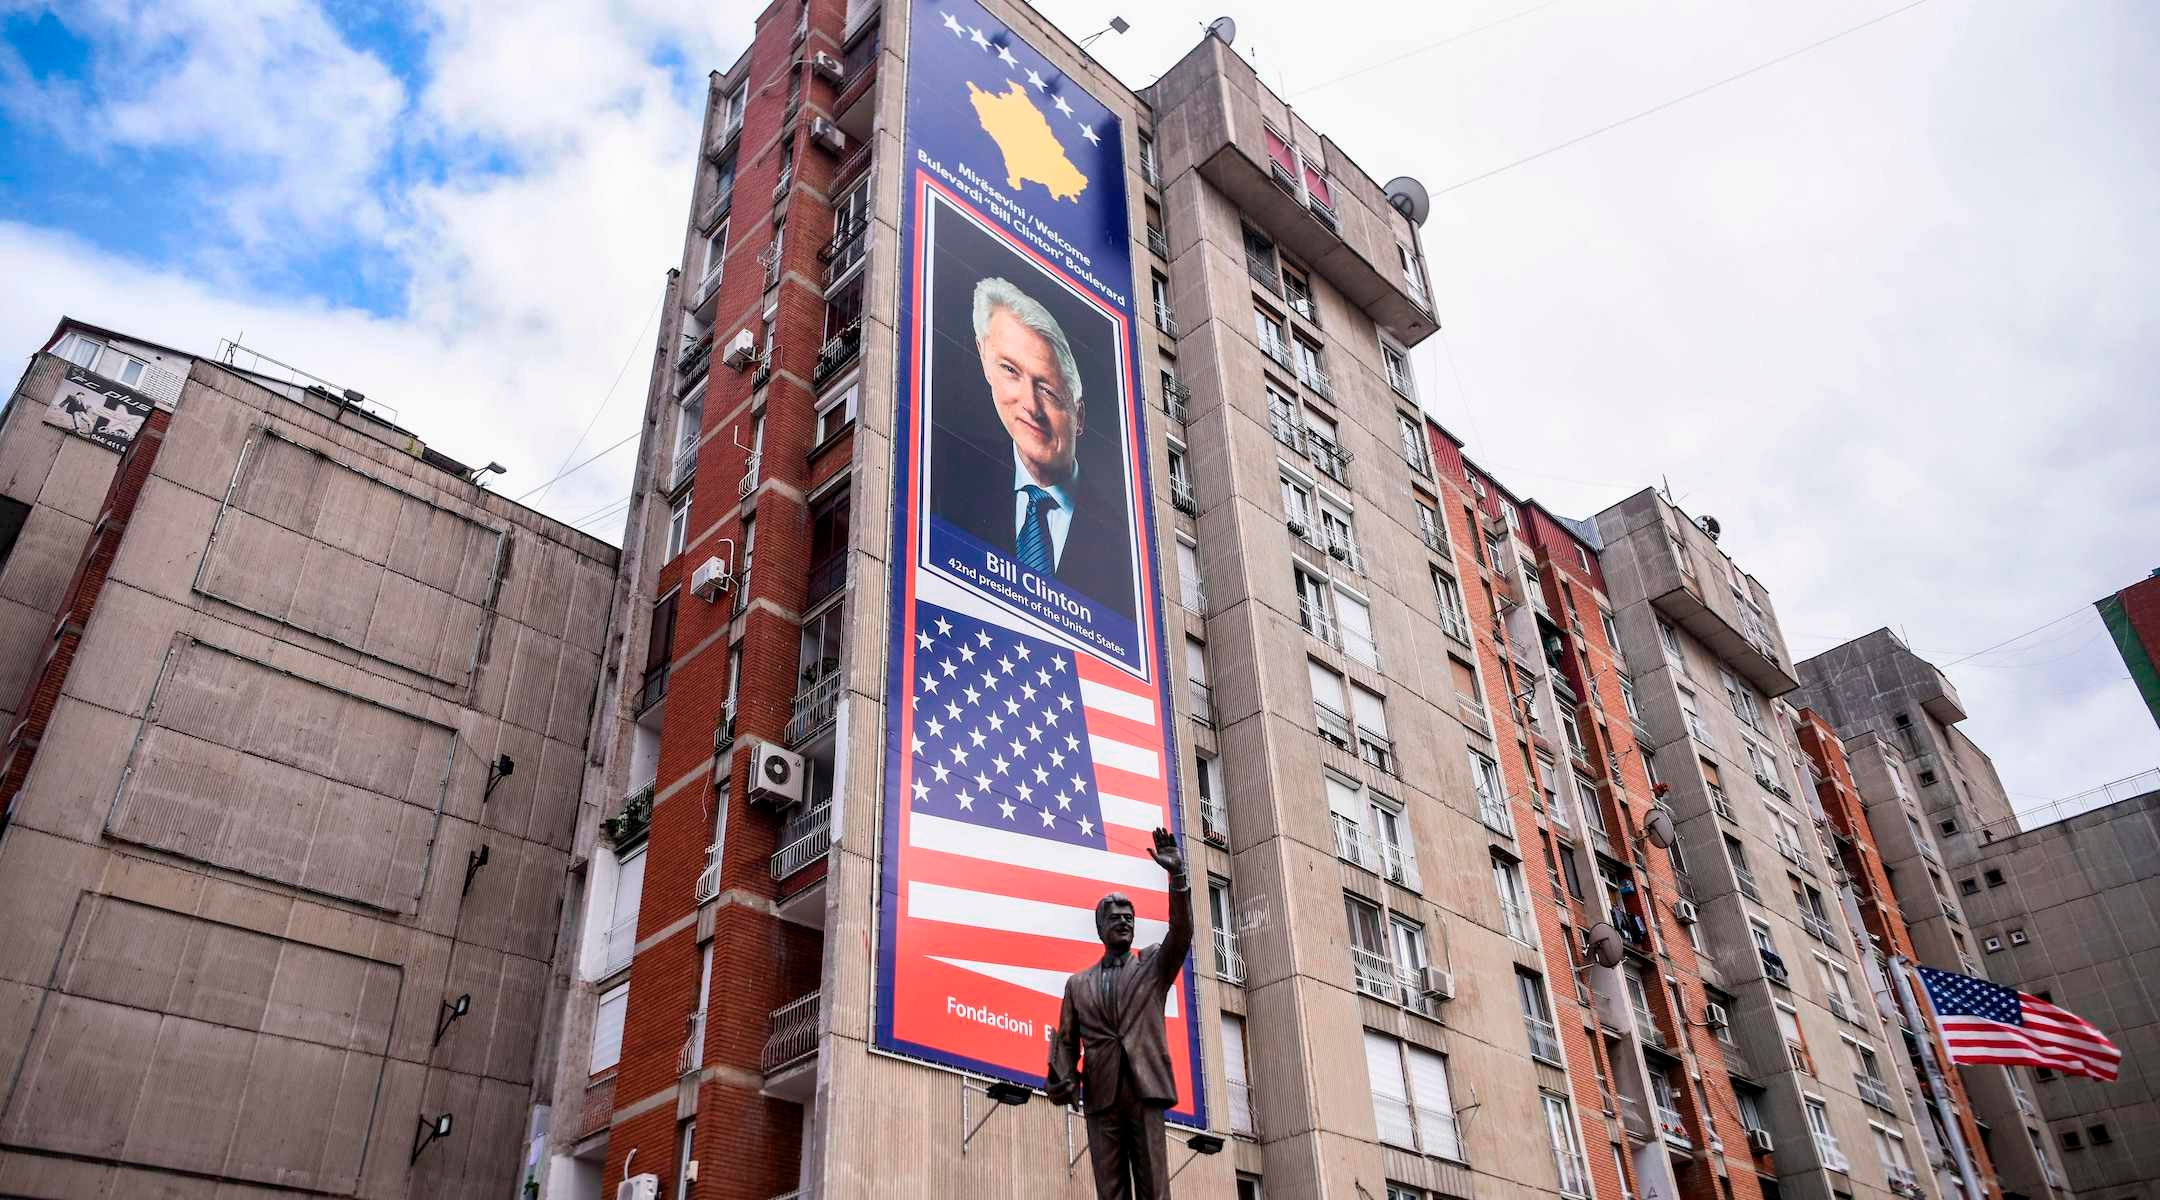 A statue of former US President Bill Clinton is pictured at a boulevard named after him, in Pristina, Kosovo, June 23, 2020. With streets named after U.S. presidents and stars and stripes flying in the capital, Kosovars do not wear their love of America lightly. (Armend Nimani/AFP via Getty Images)